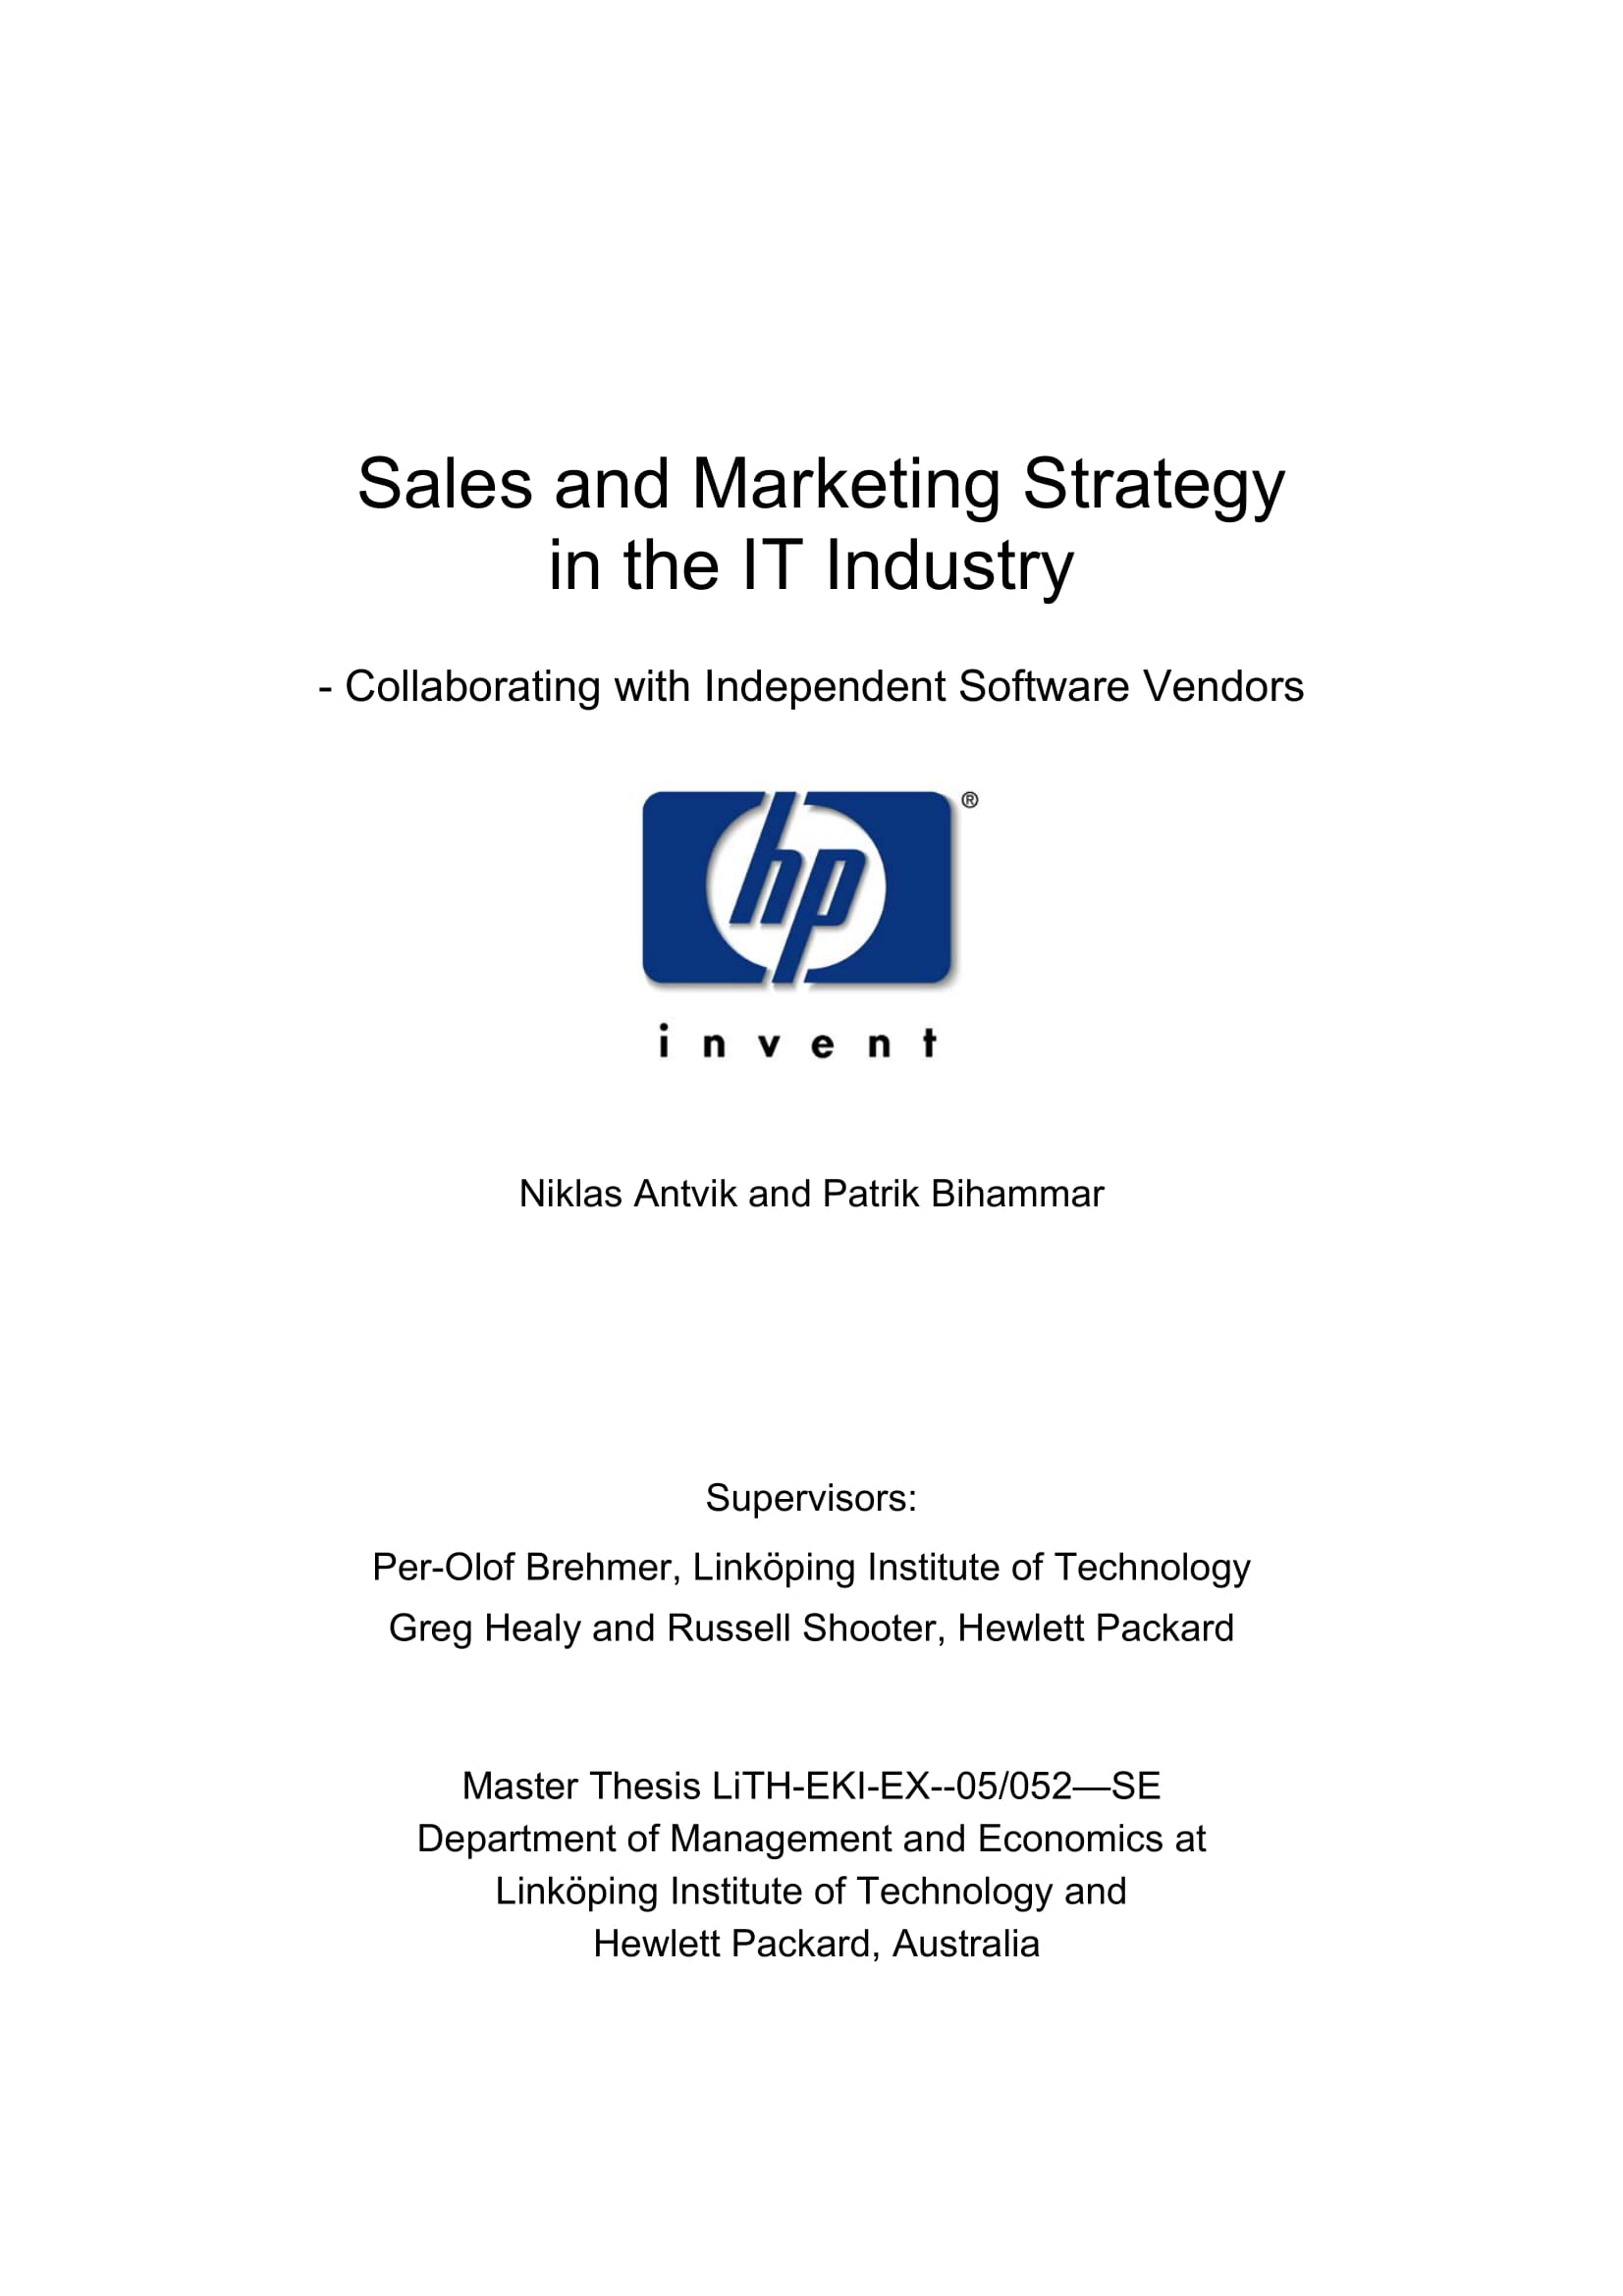 sales and marketing strategy plan in the it industry example 001